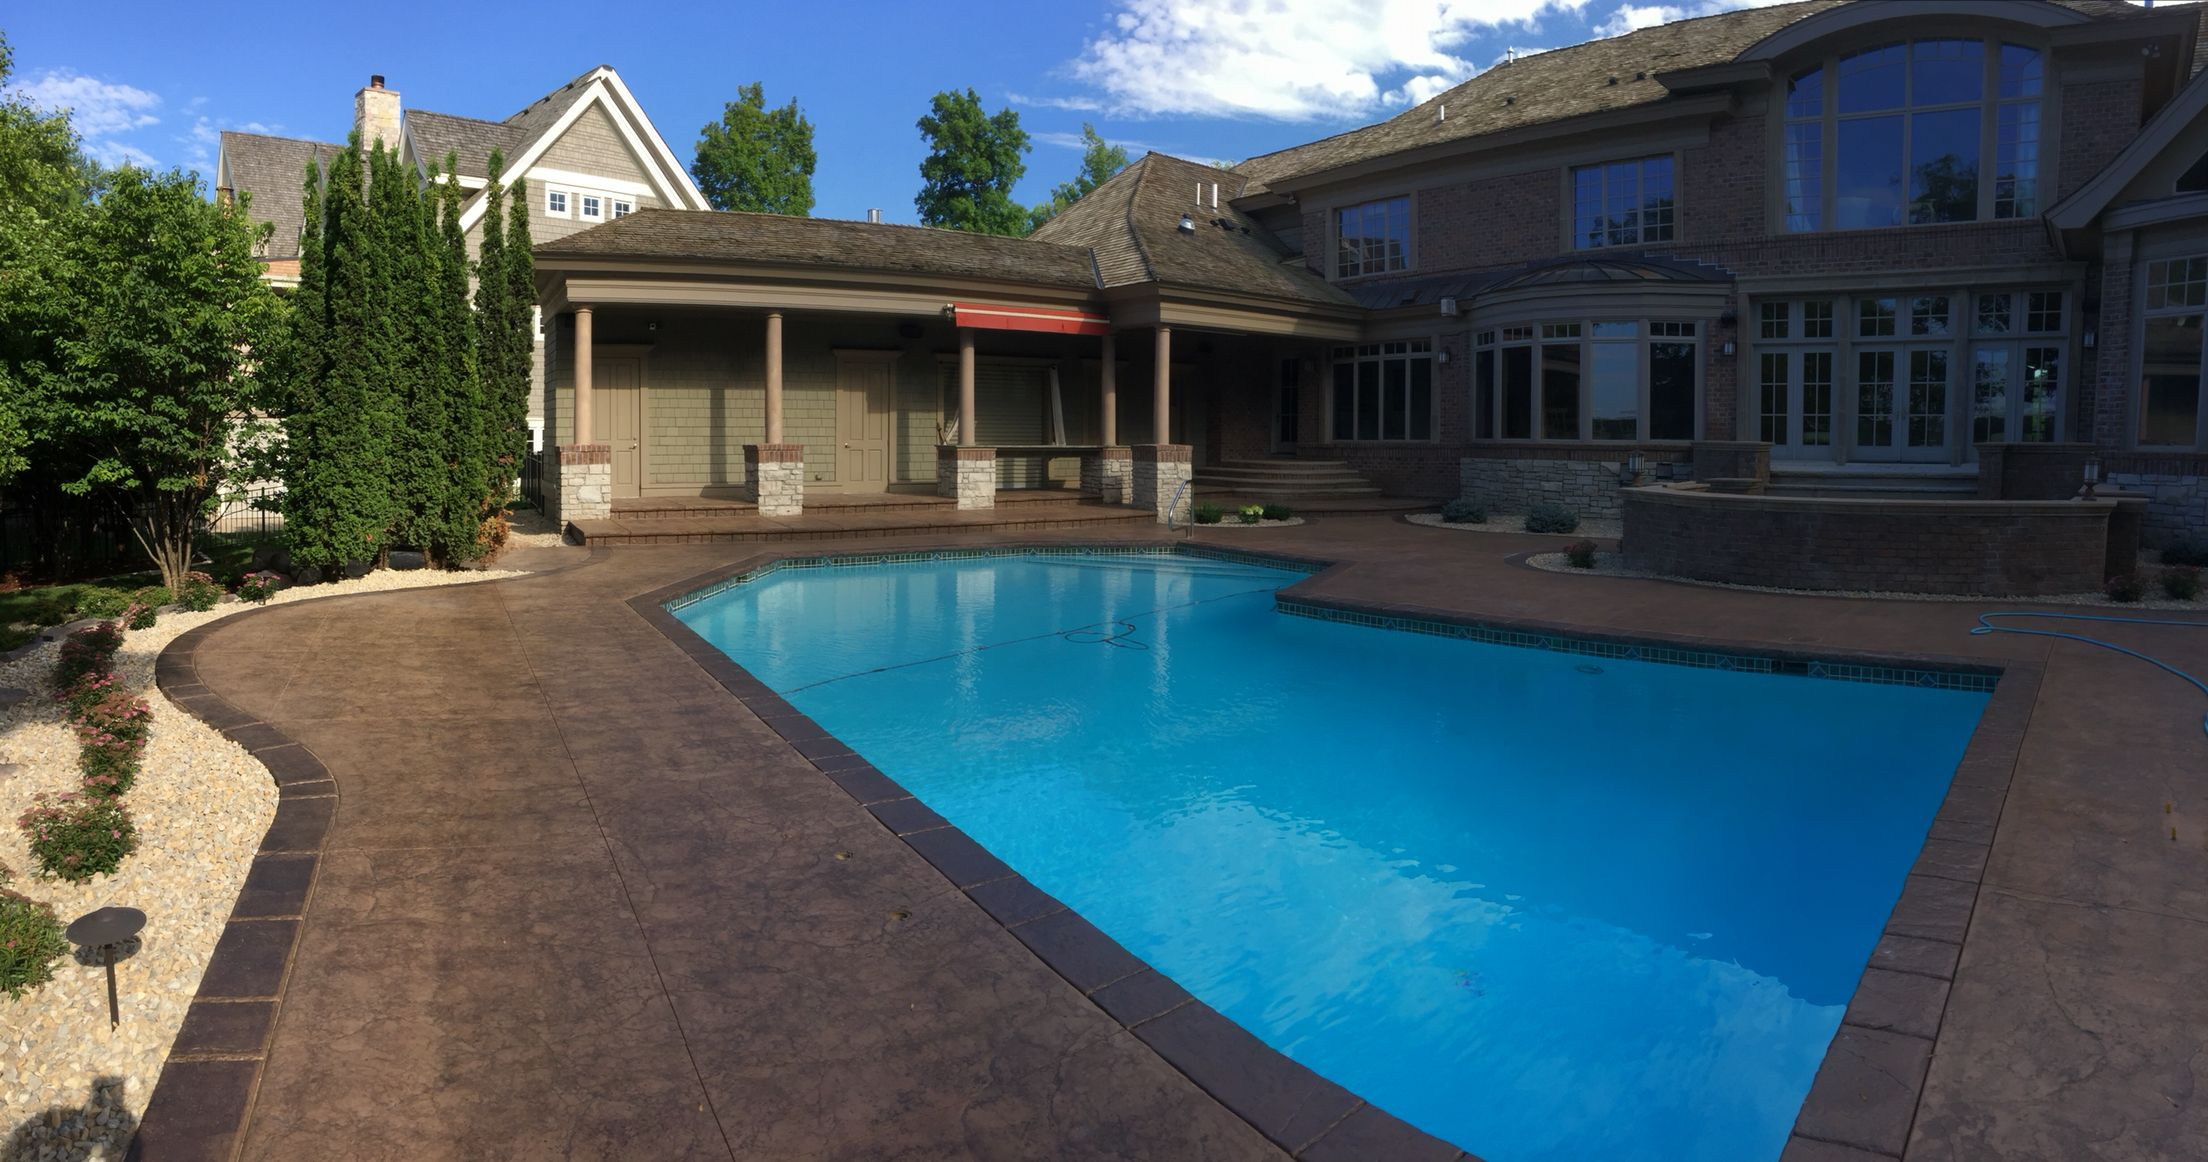 Stamped And Colored Concrete Pool Deck With Custom Chiseled Stone